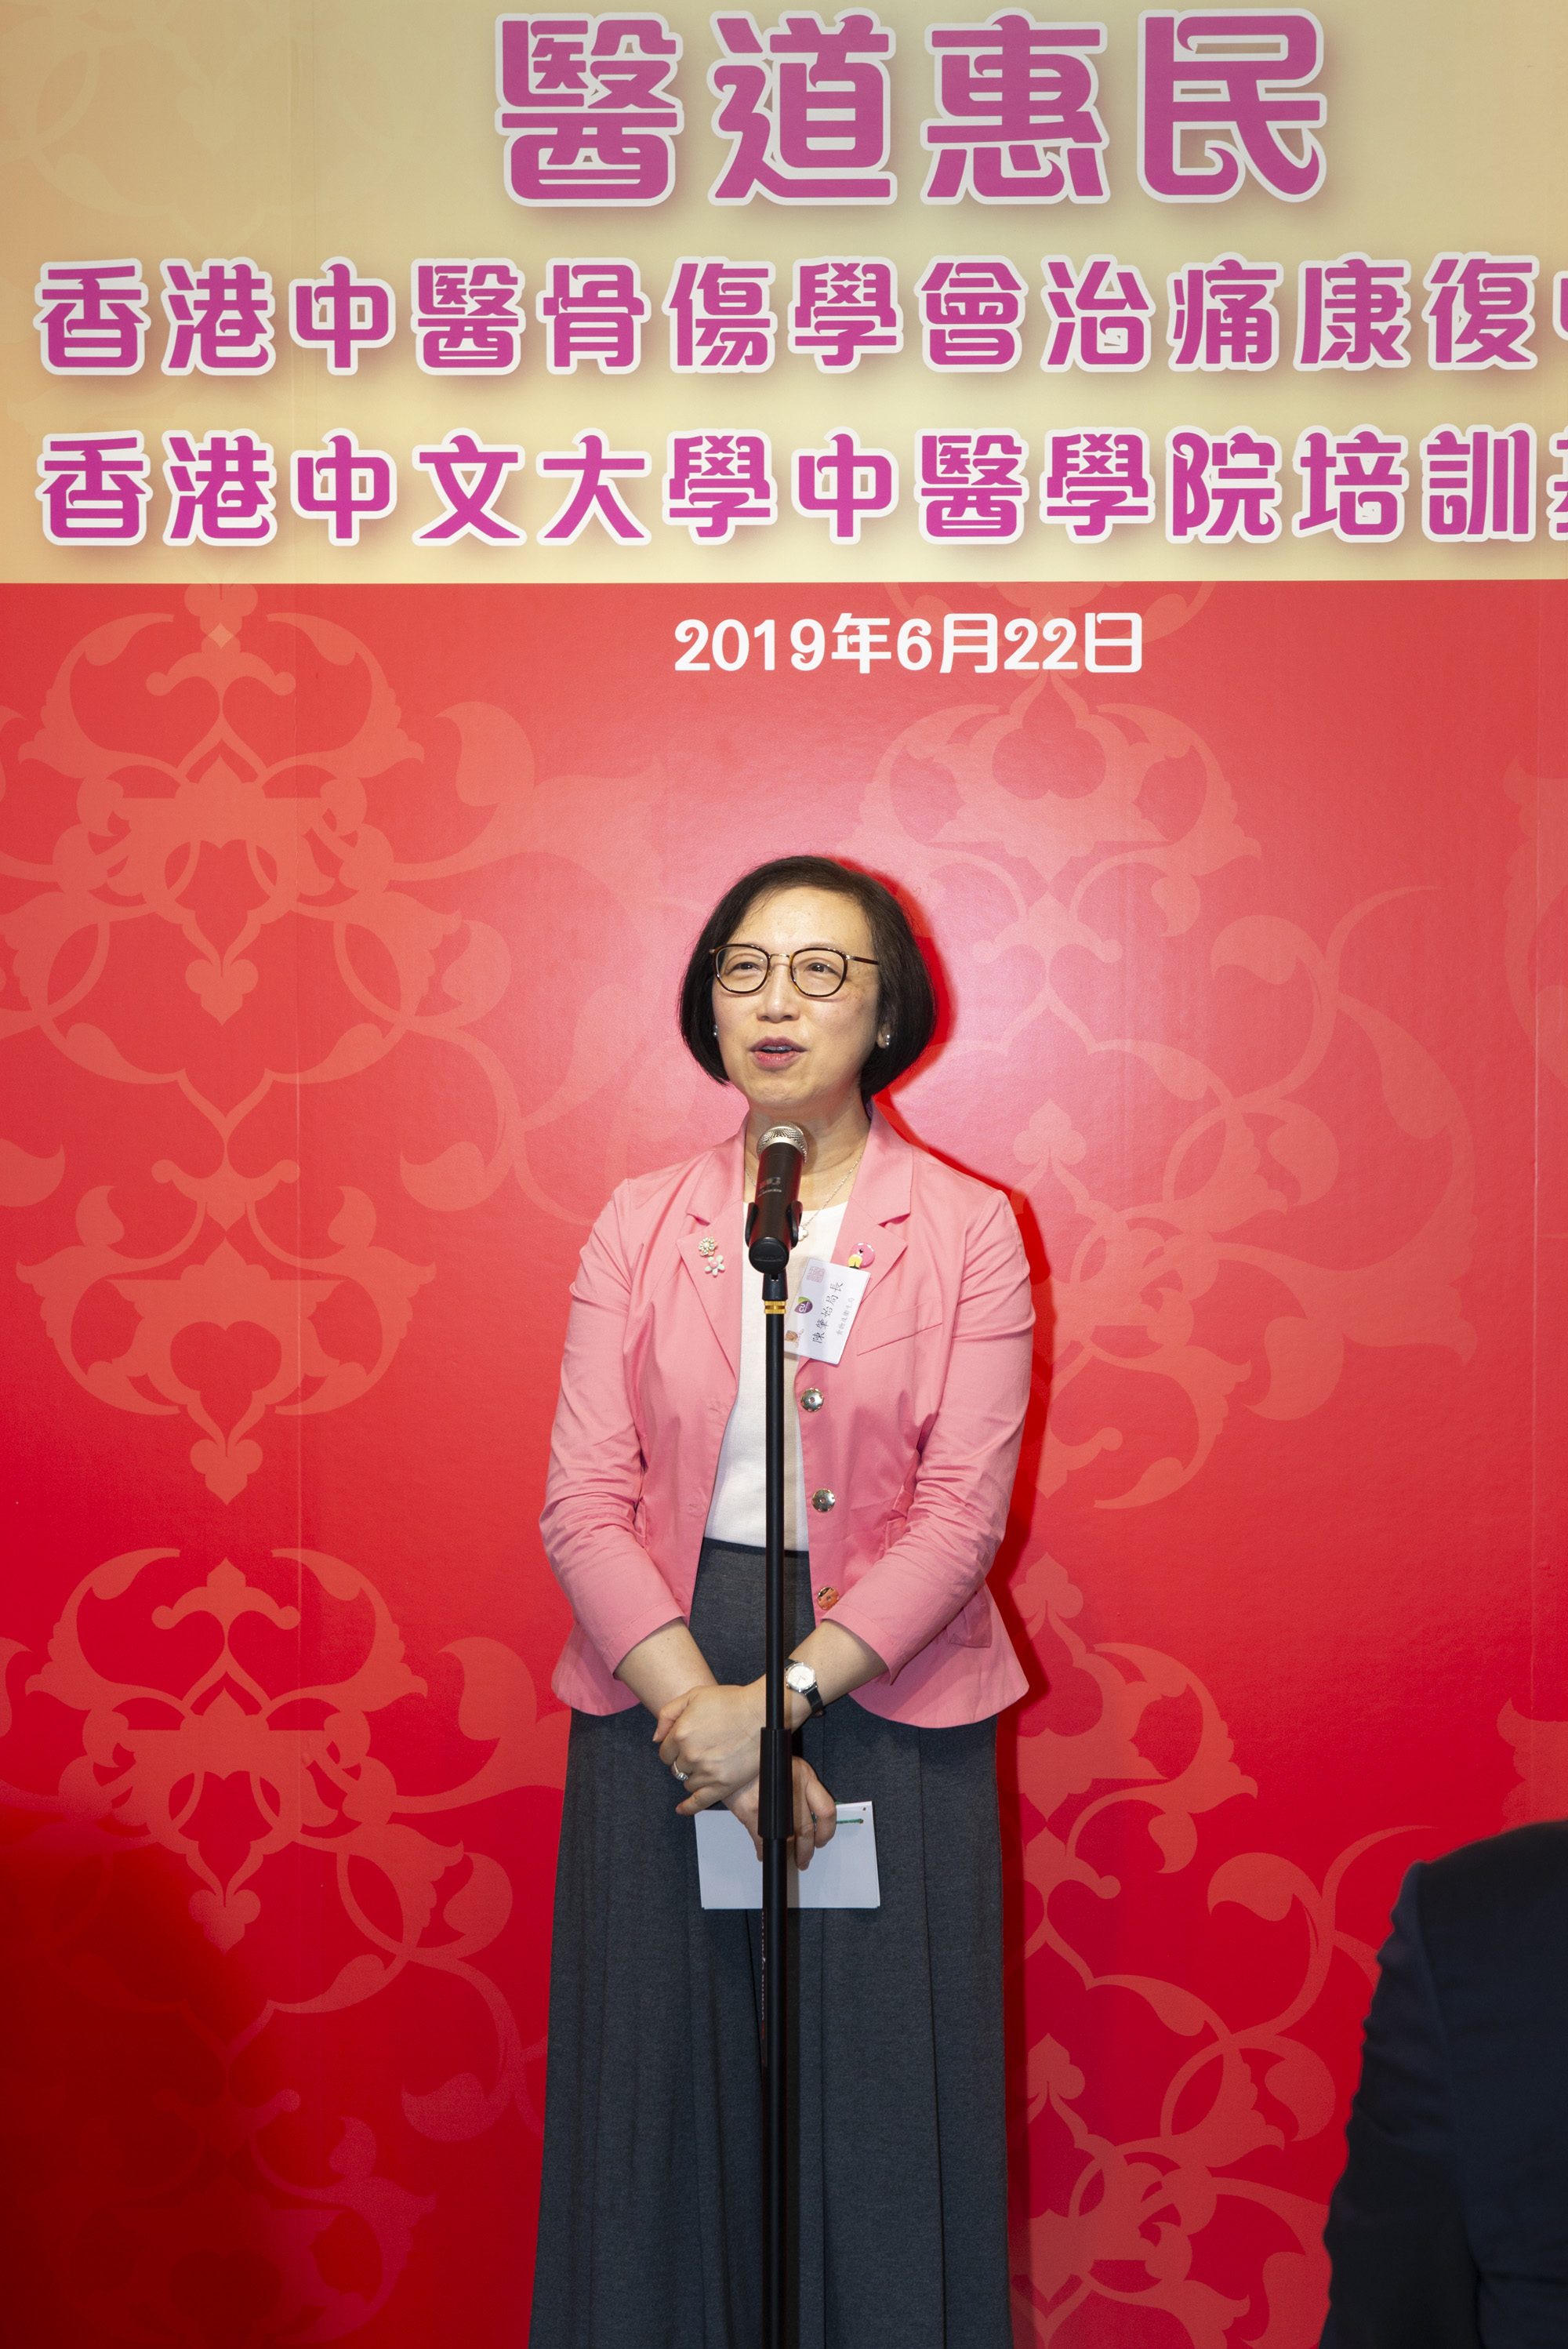 Professor Sophia CHAN, Secretary for Food and Health, HKSAR Government, states that the collaboration among the School of Chinese Medicine of CUHK, the Community Med Care and the Hong Kong T.C.M. Orthopaedic & Traumatic Association, can provide quality Chinese medicine services and training to the Chinese medicine students.